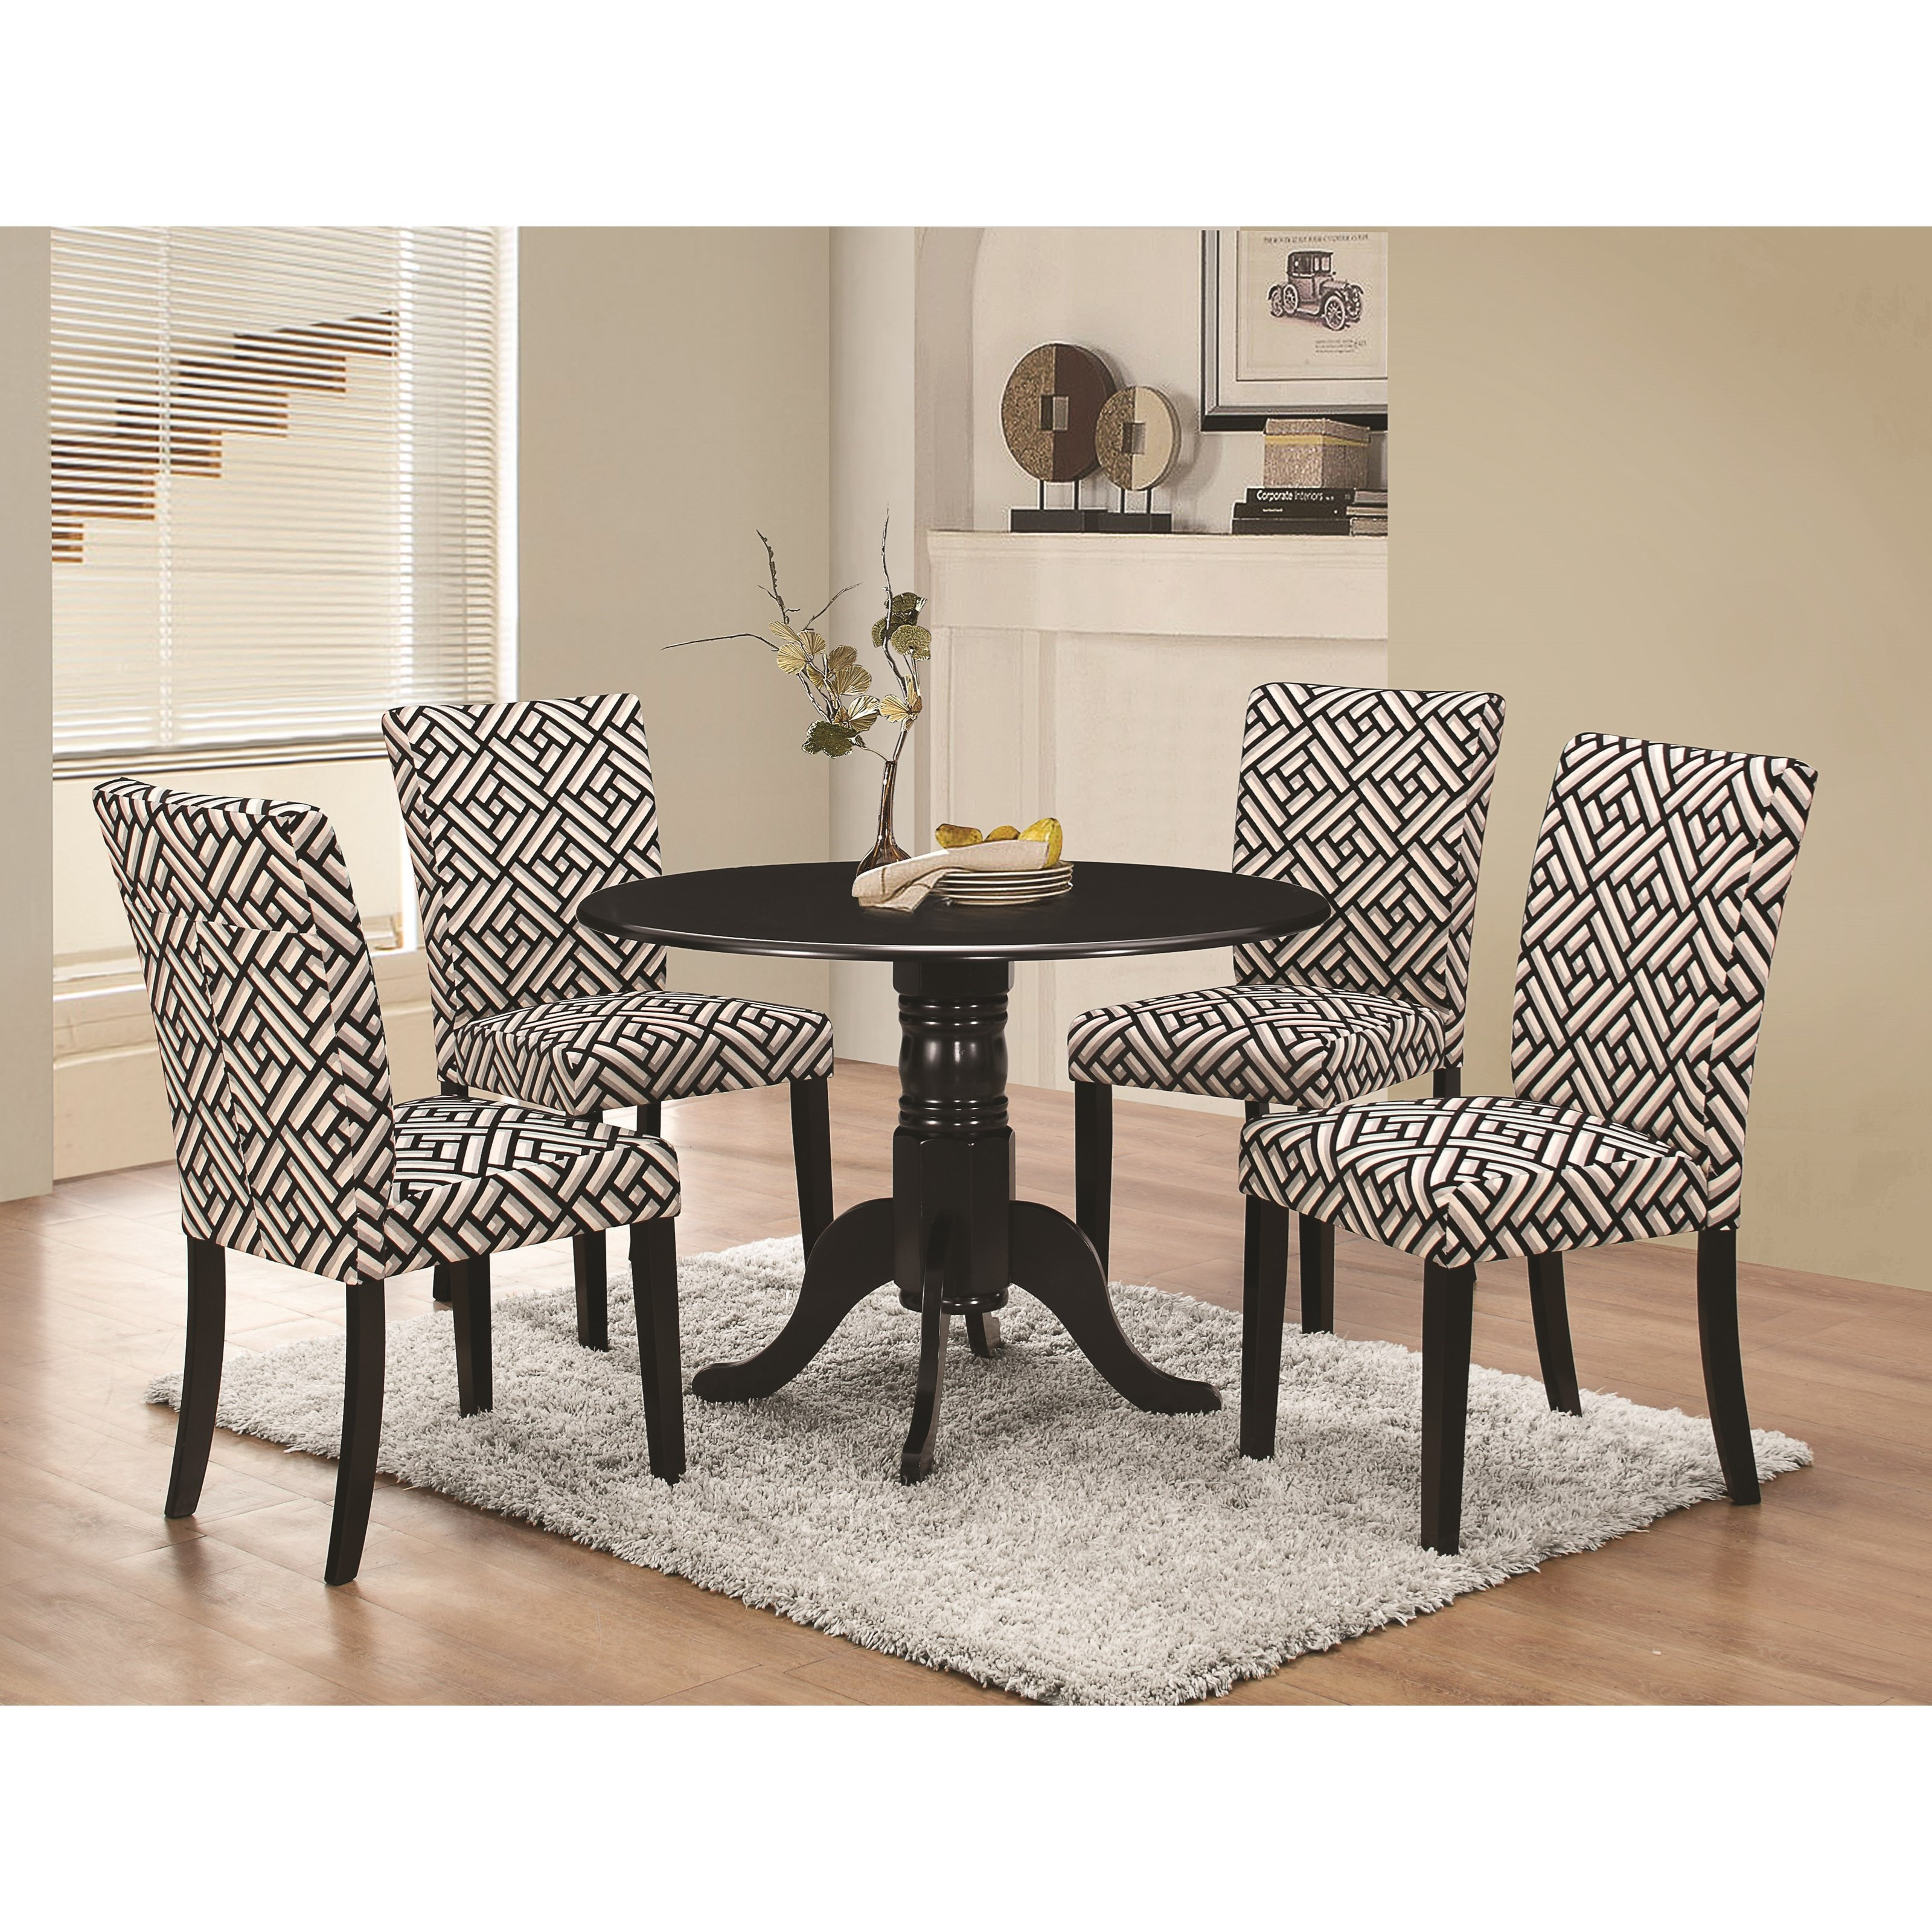 Coaster Allston 5 Pc Table & Chair Set - Item Number: 106761+4x106762